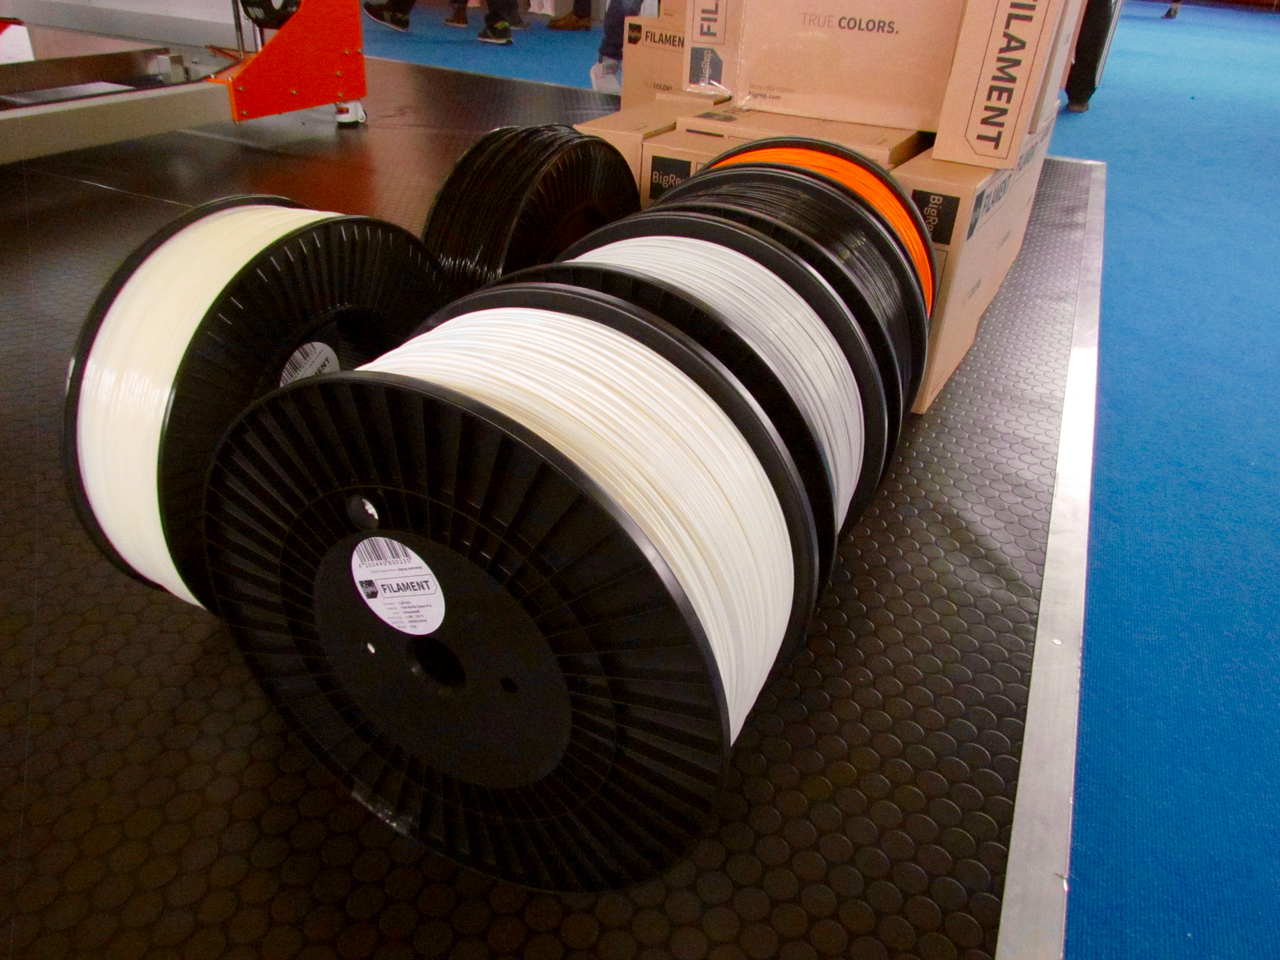 Are these 8Kg spools of 3D printer filament?